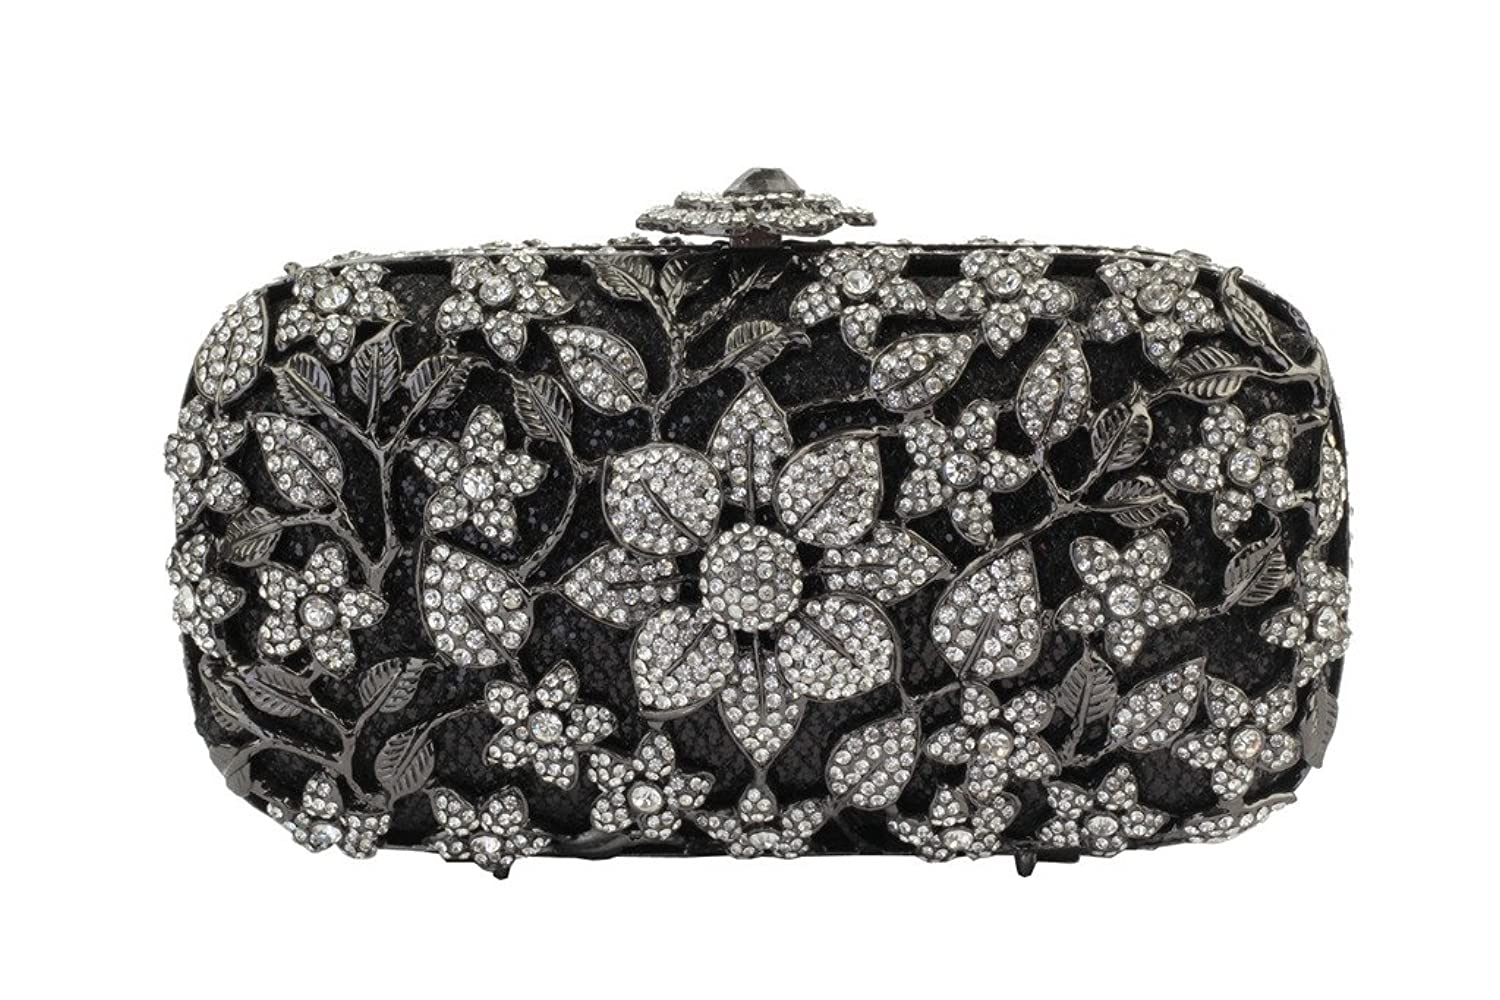 Yilongsheng Women's Glittery Wisteria Flowers Evening Clutches Bags with Shiny Rhinestones(Black)